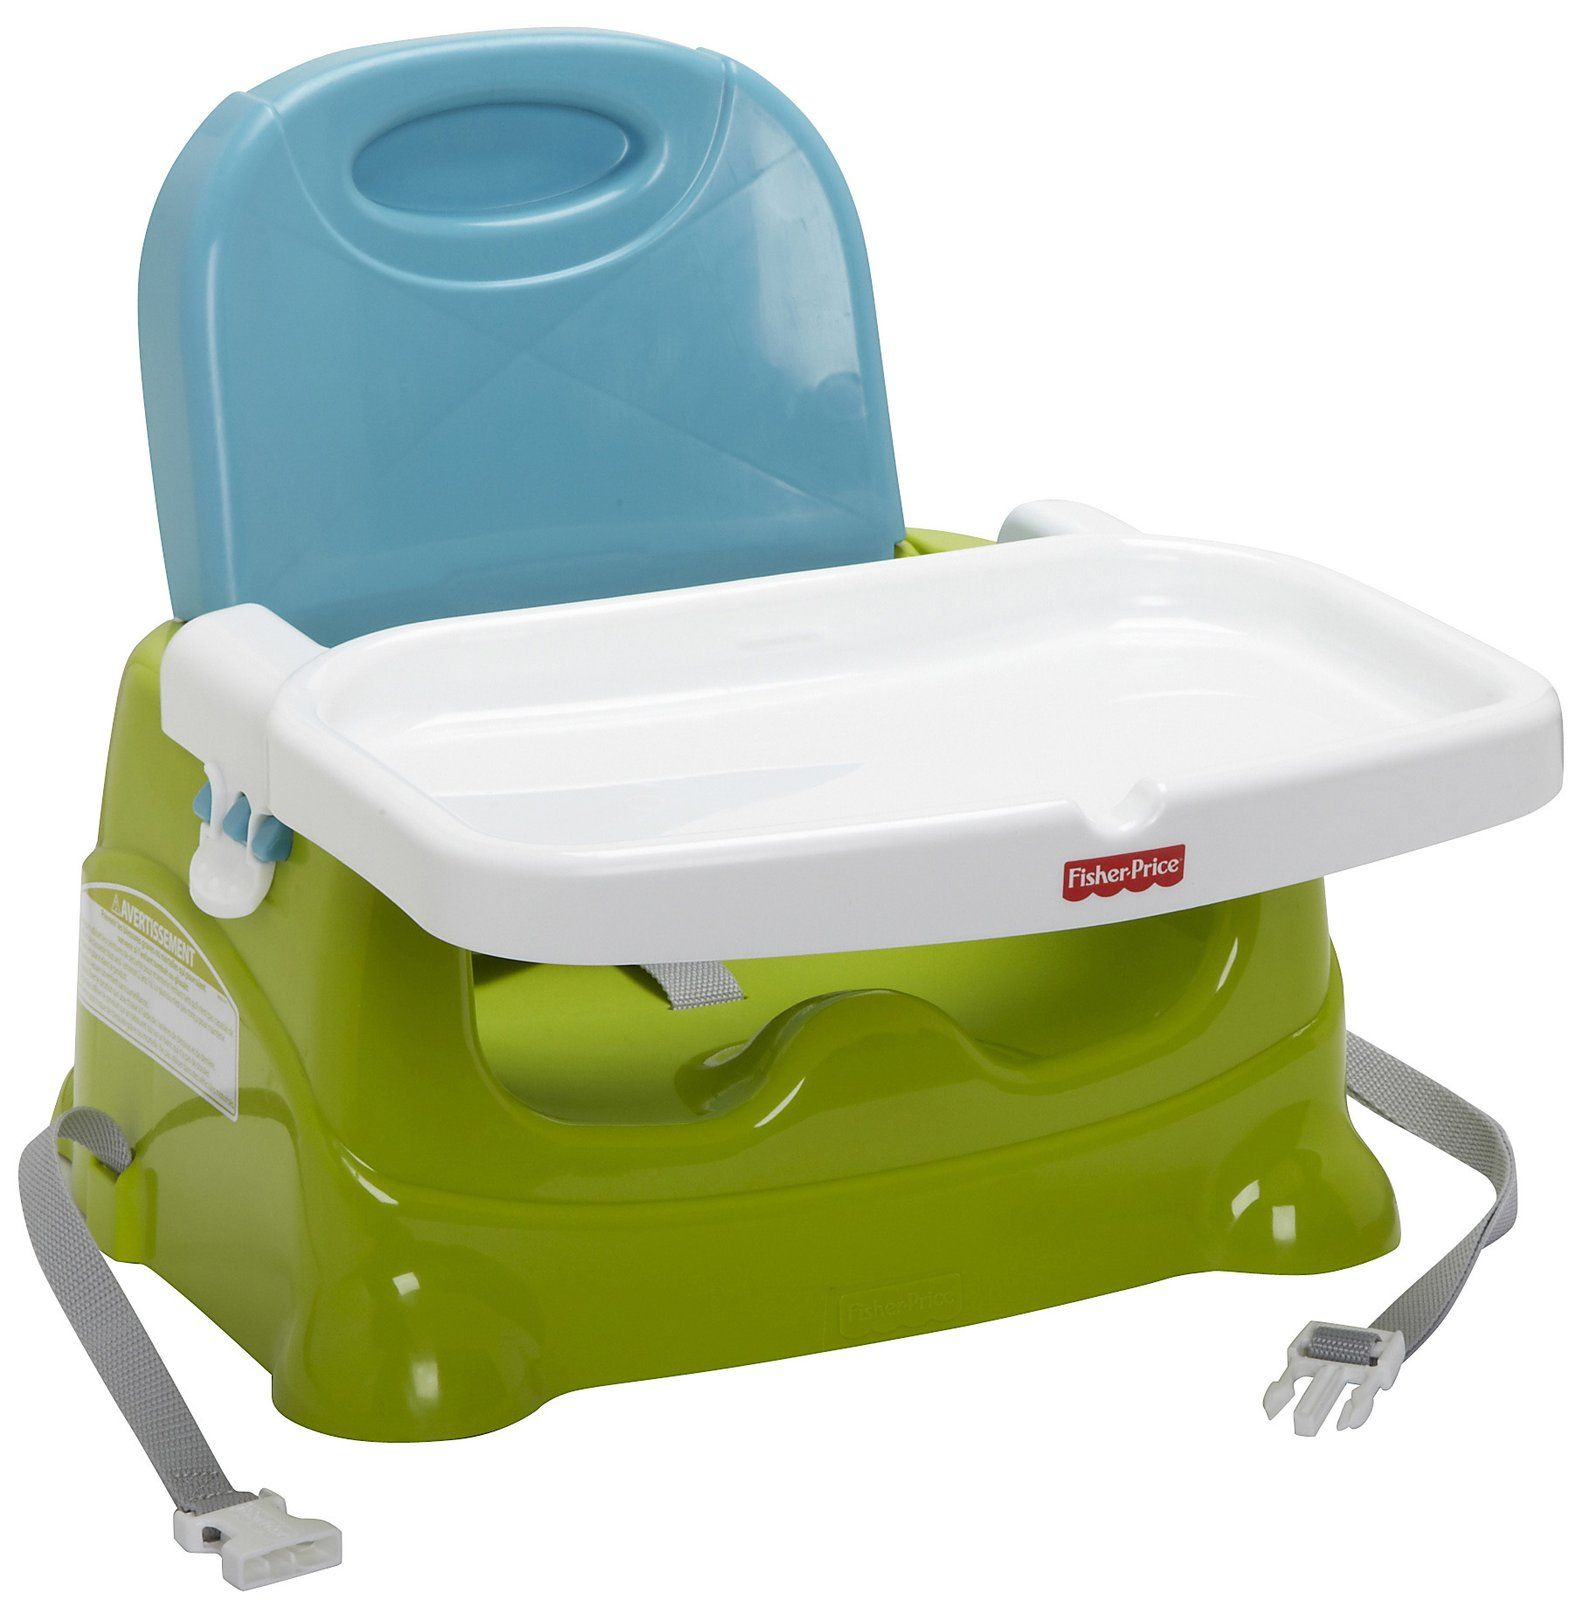 Fisher Price Healthy Care Booster A great alternative to a